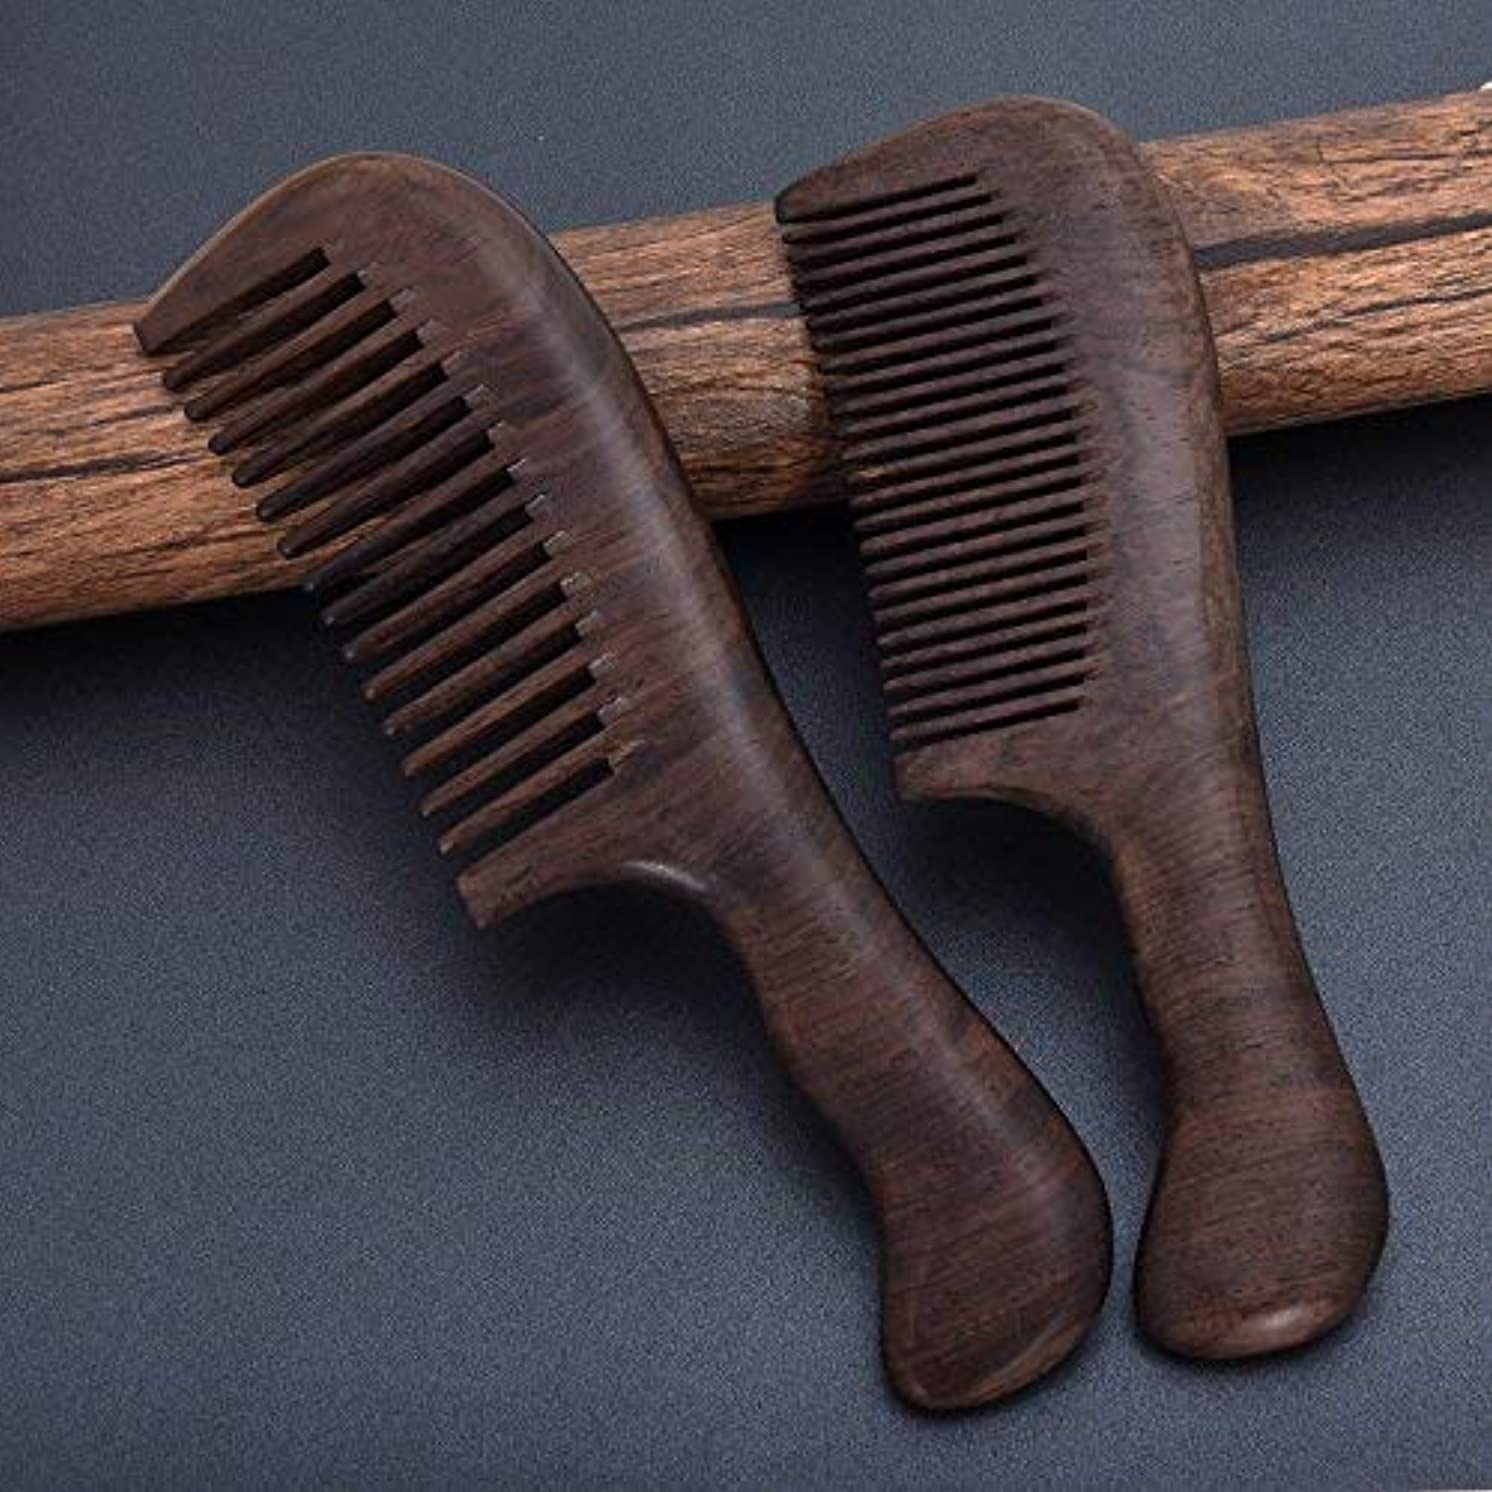 エゴイズム刈る相互Black Sandalwood Hair Comb, Pack of 2 Anti-static 8 inches Wooden Comb Set with Natural Aroma, A Standard Comb...